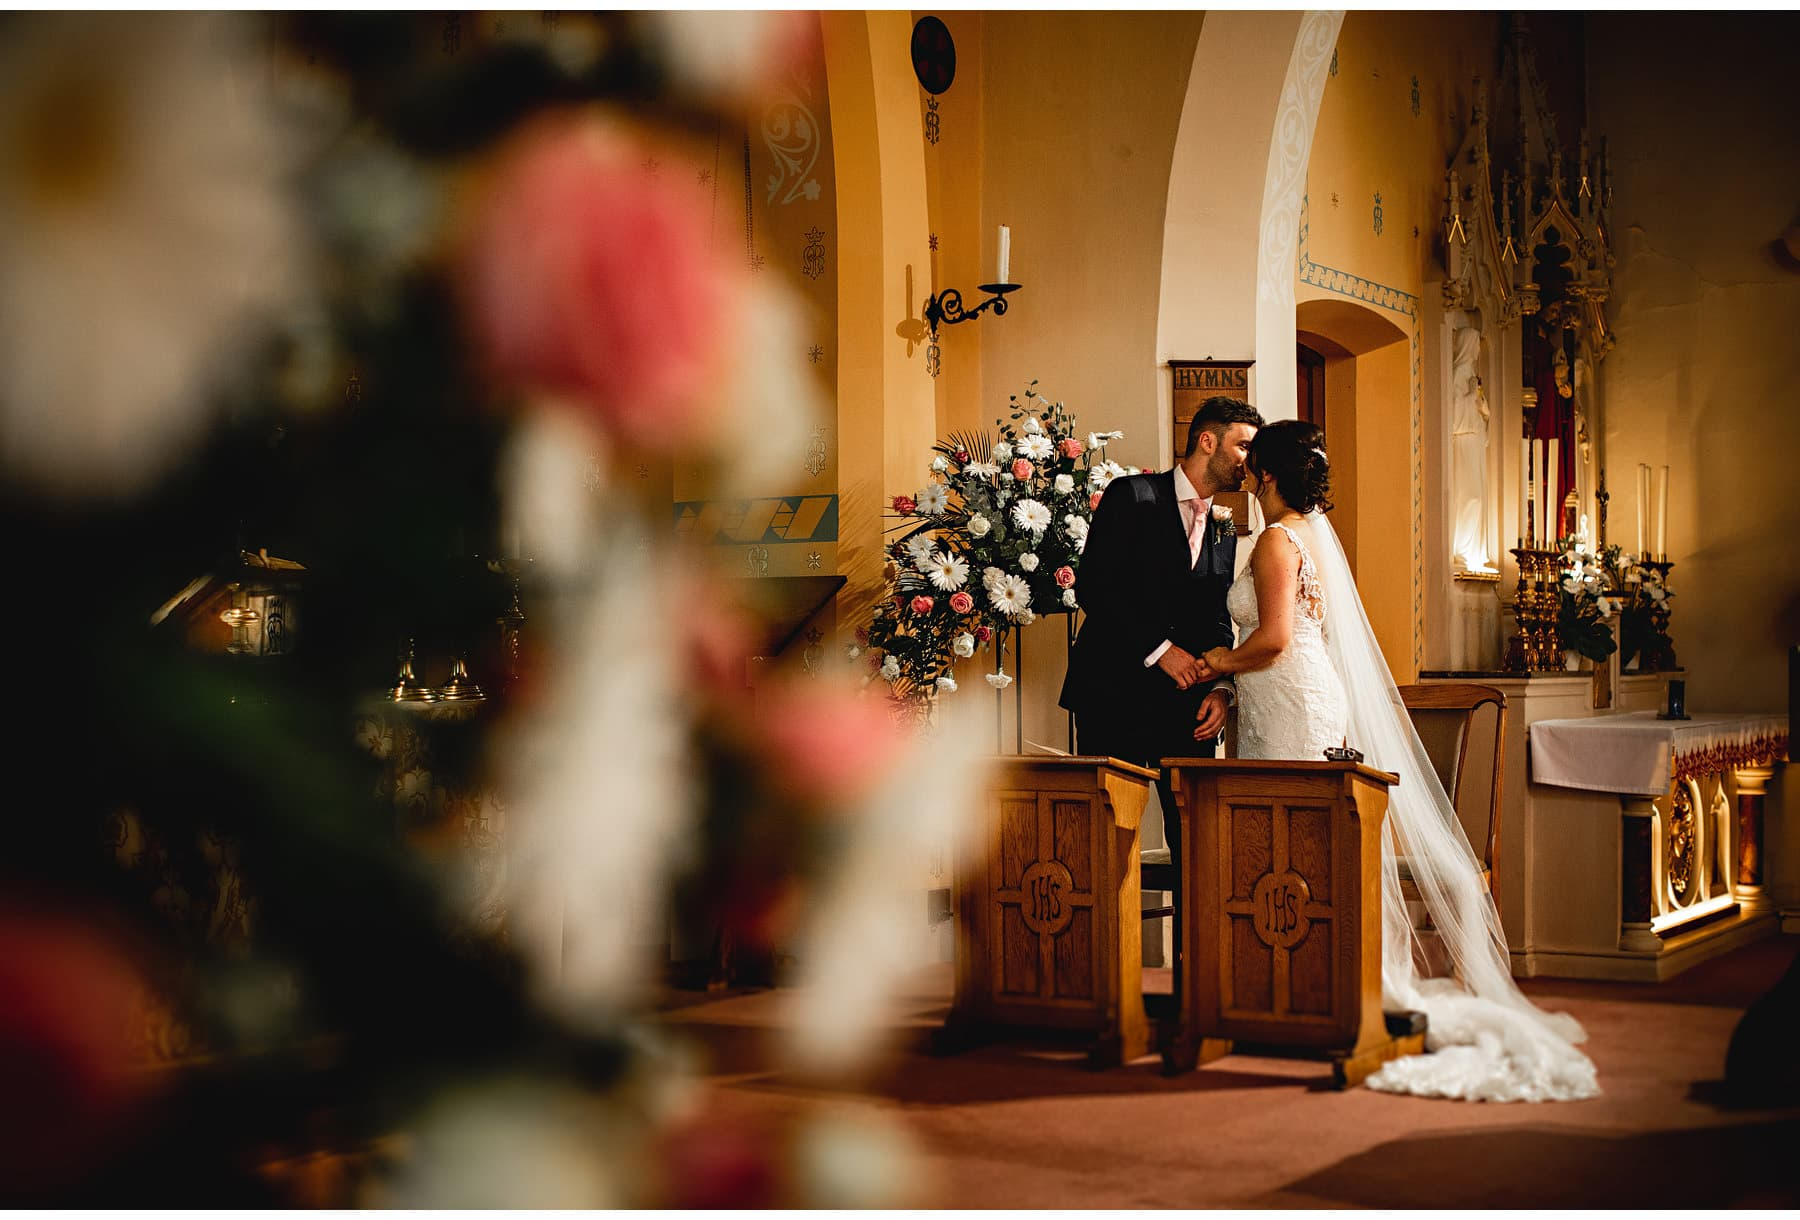 the bride and groom kissing in the church